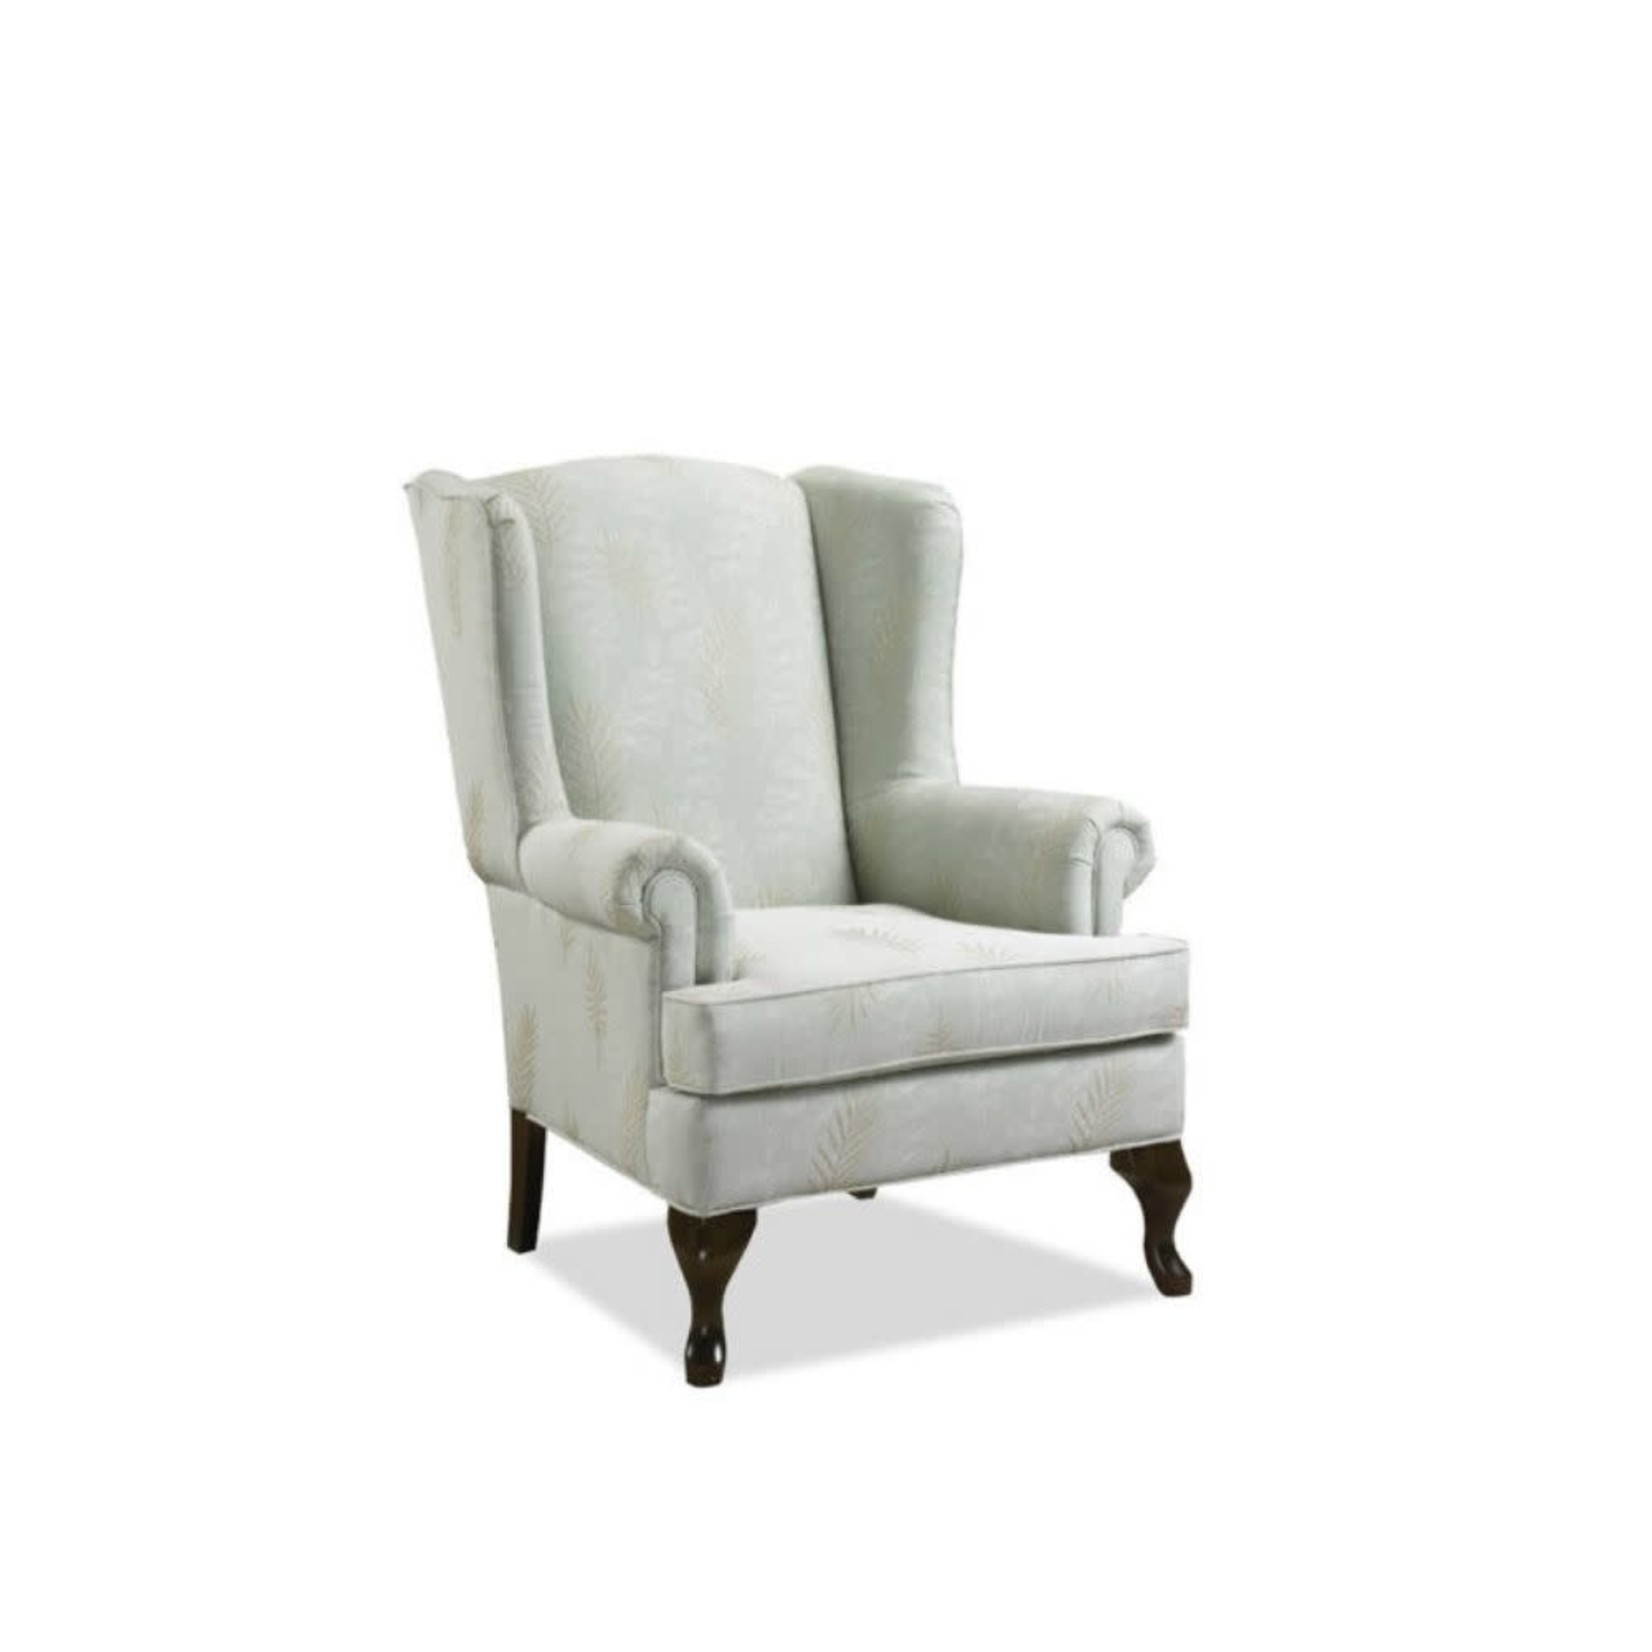 Brentwood Classics Nora Chair